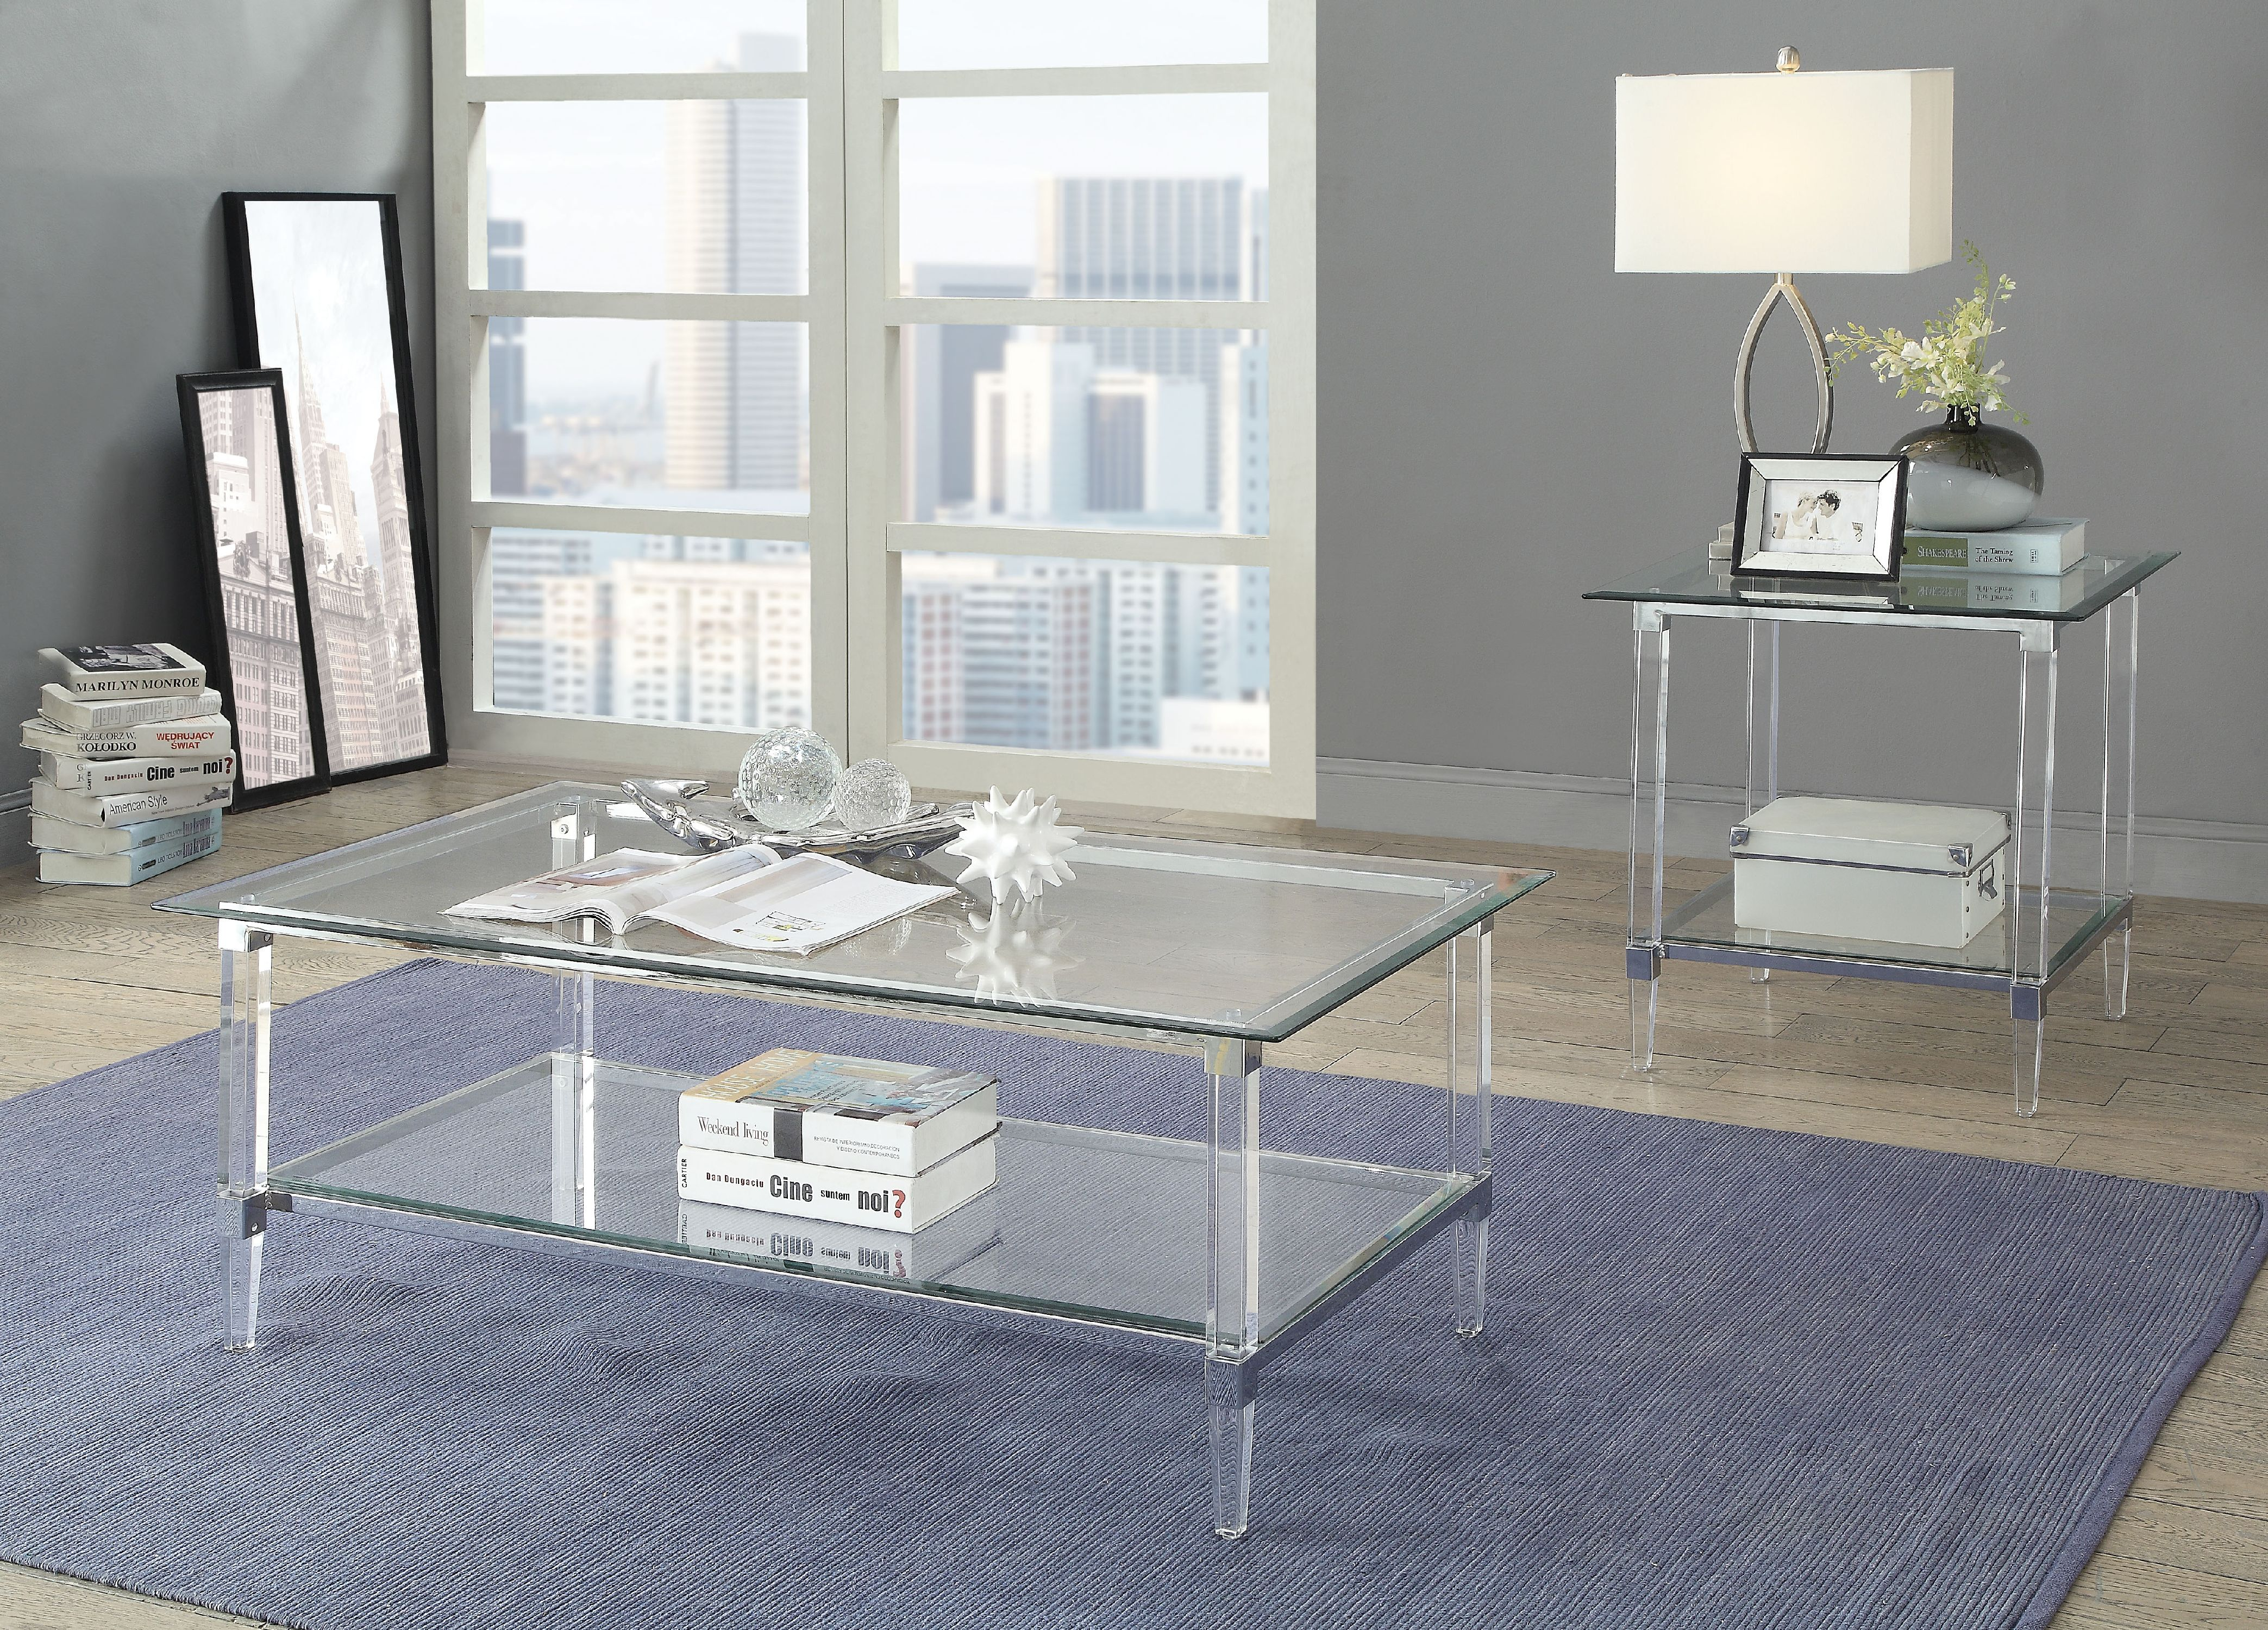 ACME Polyanthus Coffee Table in Clear Acrylic and Glass - Walmart.com - Walmart.com